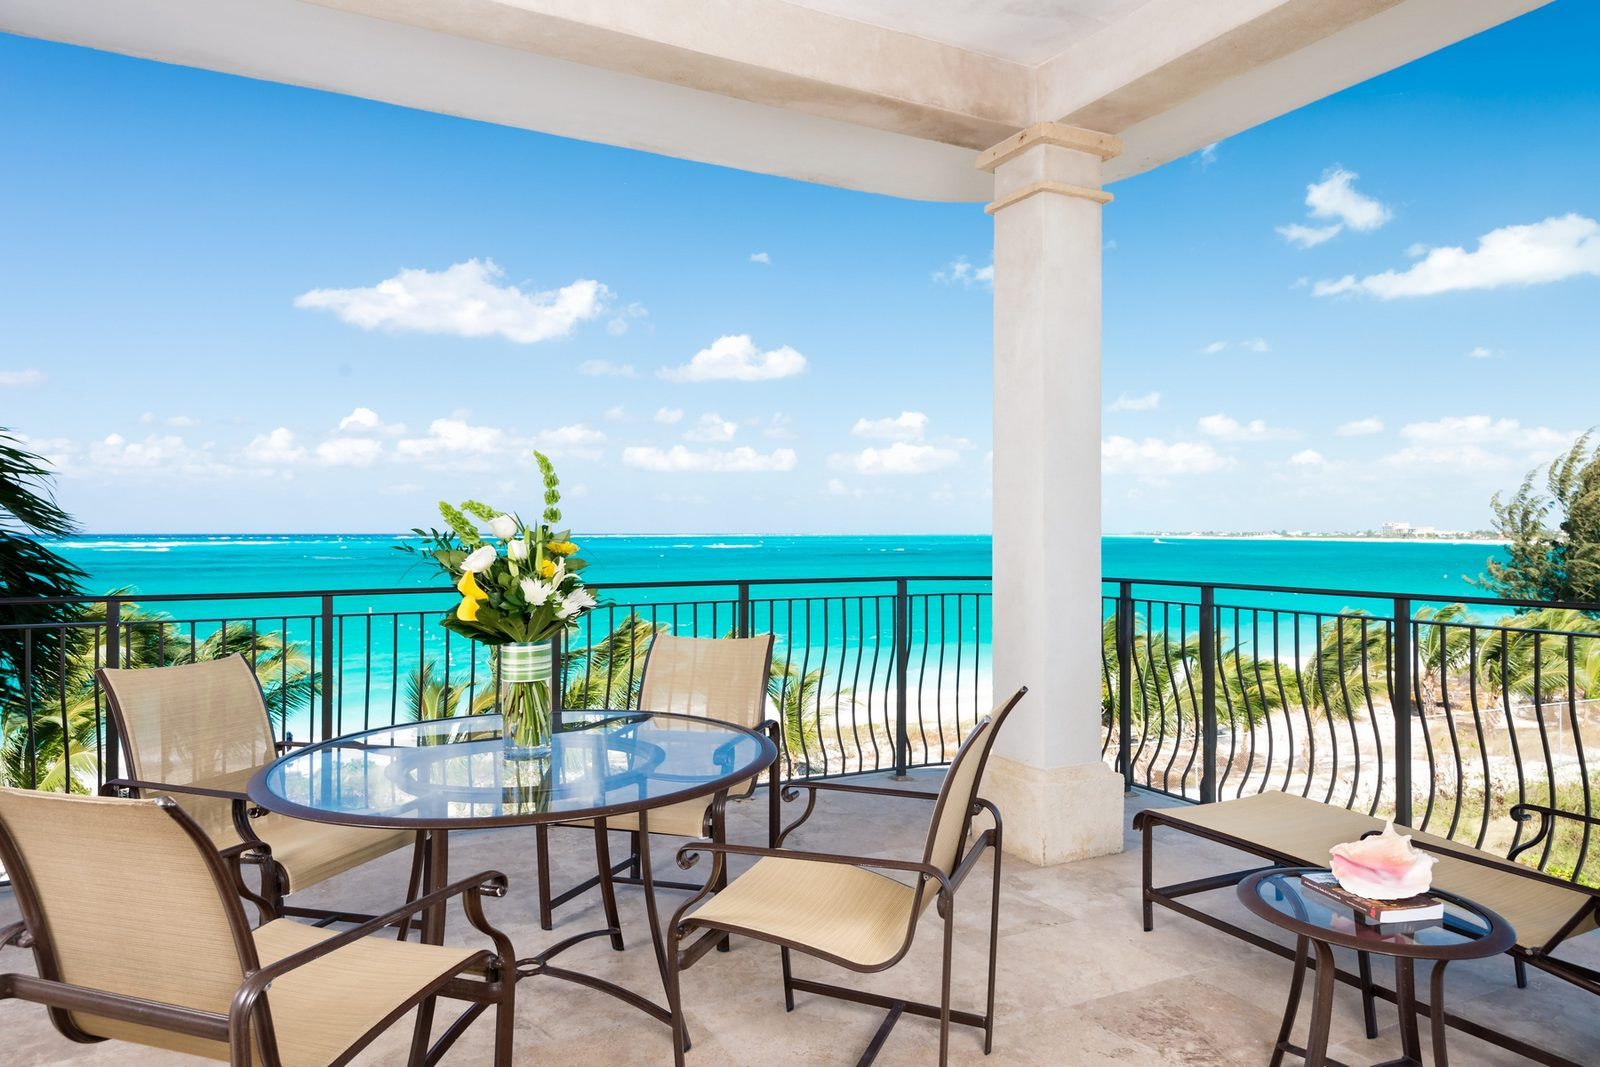 7 Bedroom Homes For Sale 3 Bedroom Luxury Apartments For Sale Grace Bay Turks And